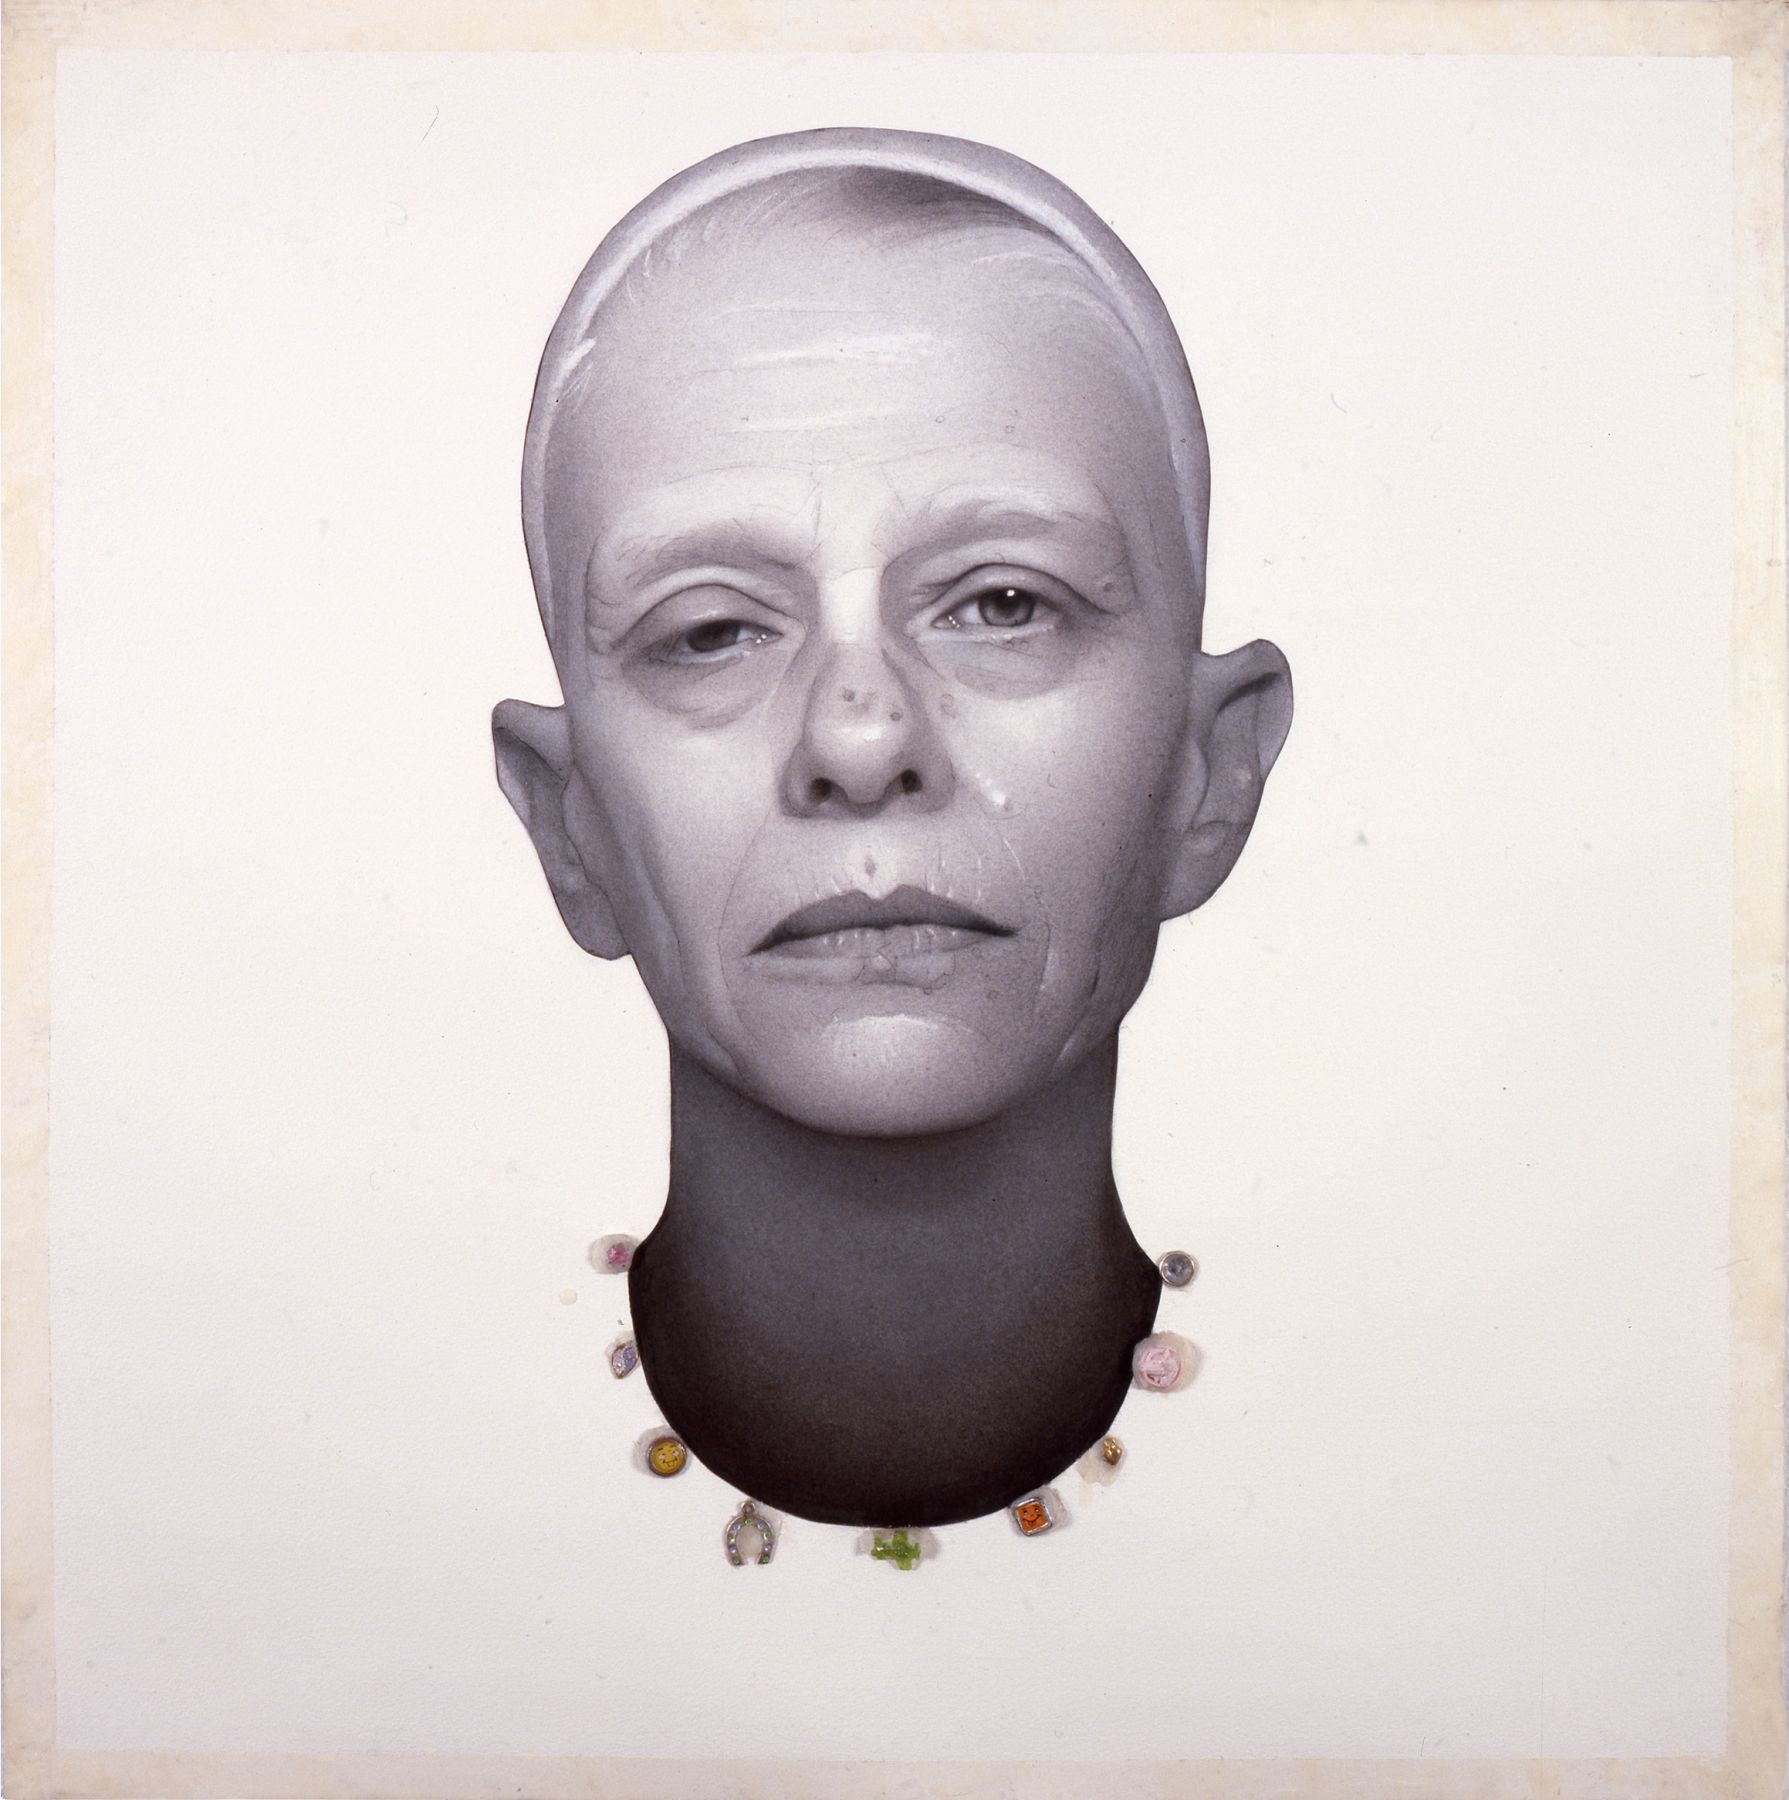 Susan Hauptman, Self Portrait (with charms), 2008, charcoal, charms, encaustic on paper, 25 x 24 inches